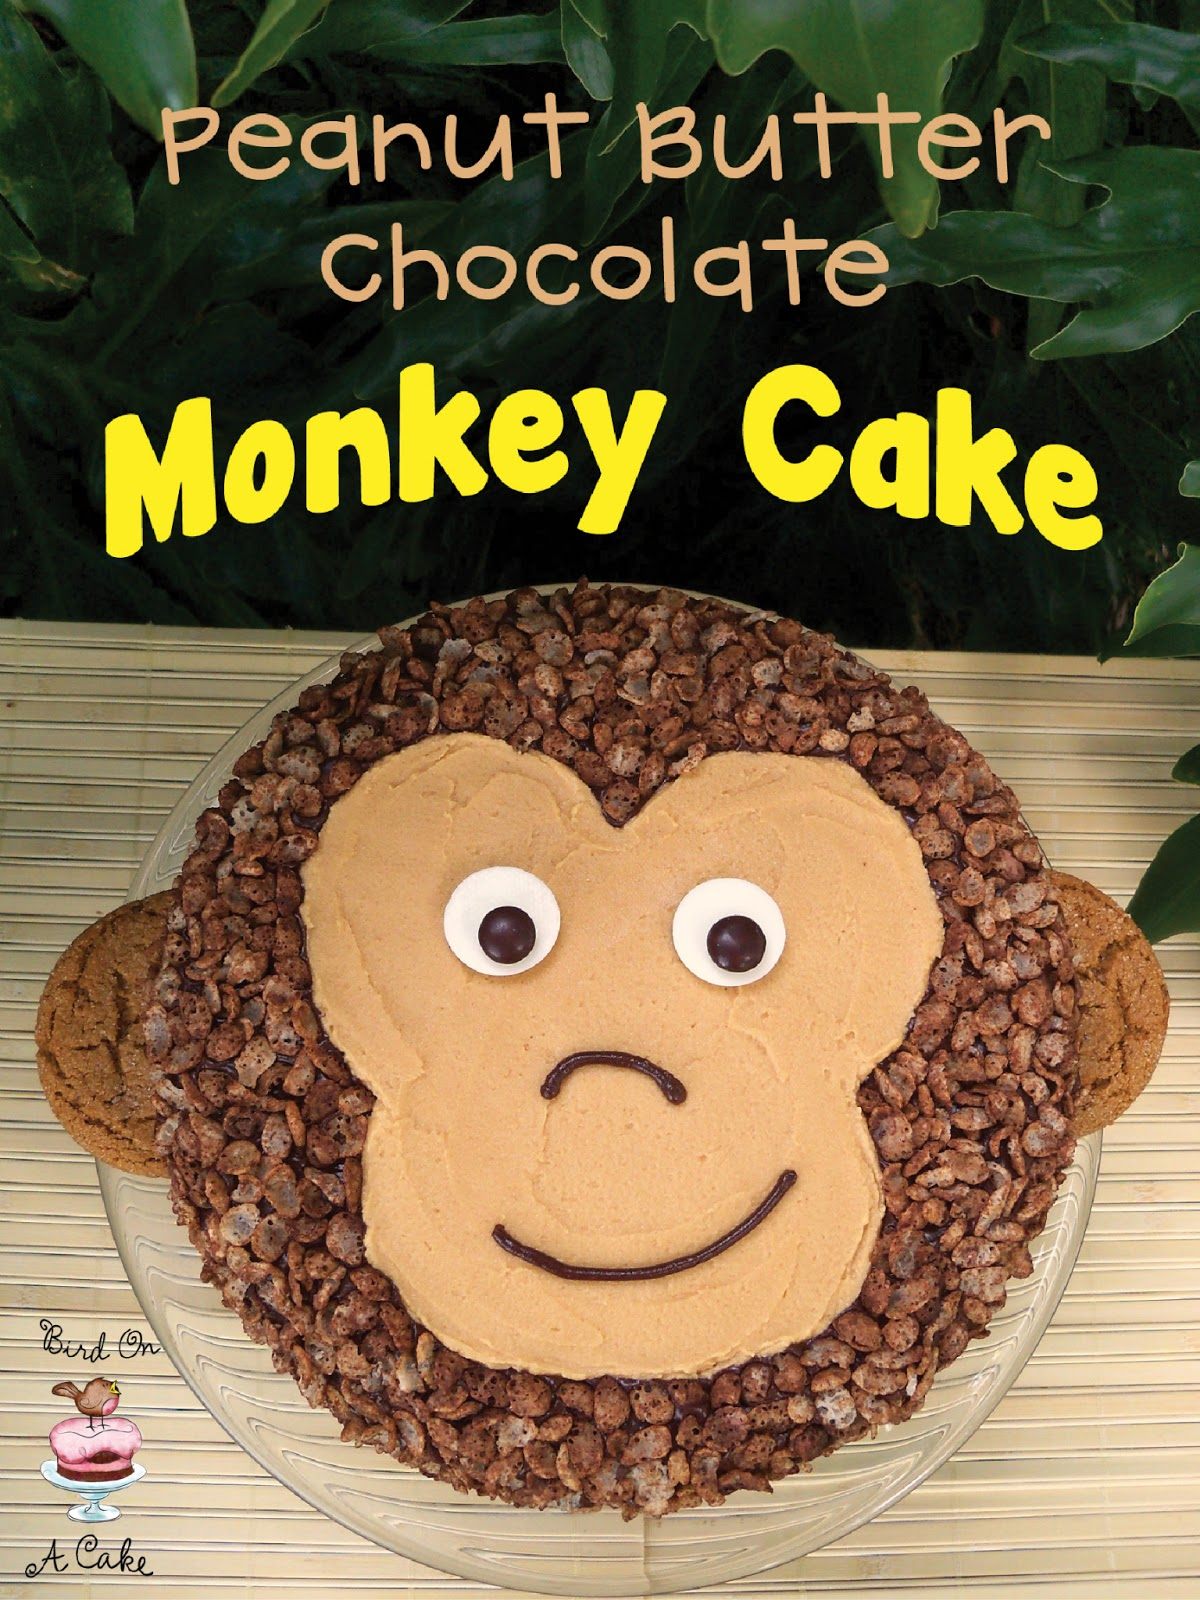 Monkey Cake Design Easy : Bird On A Cake: Peanut Butter Chocolate Monkey Cake